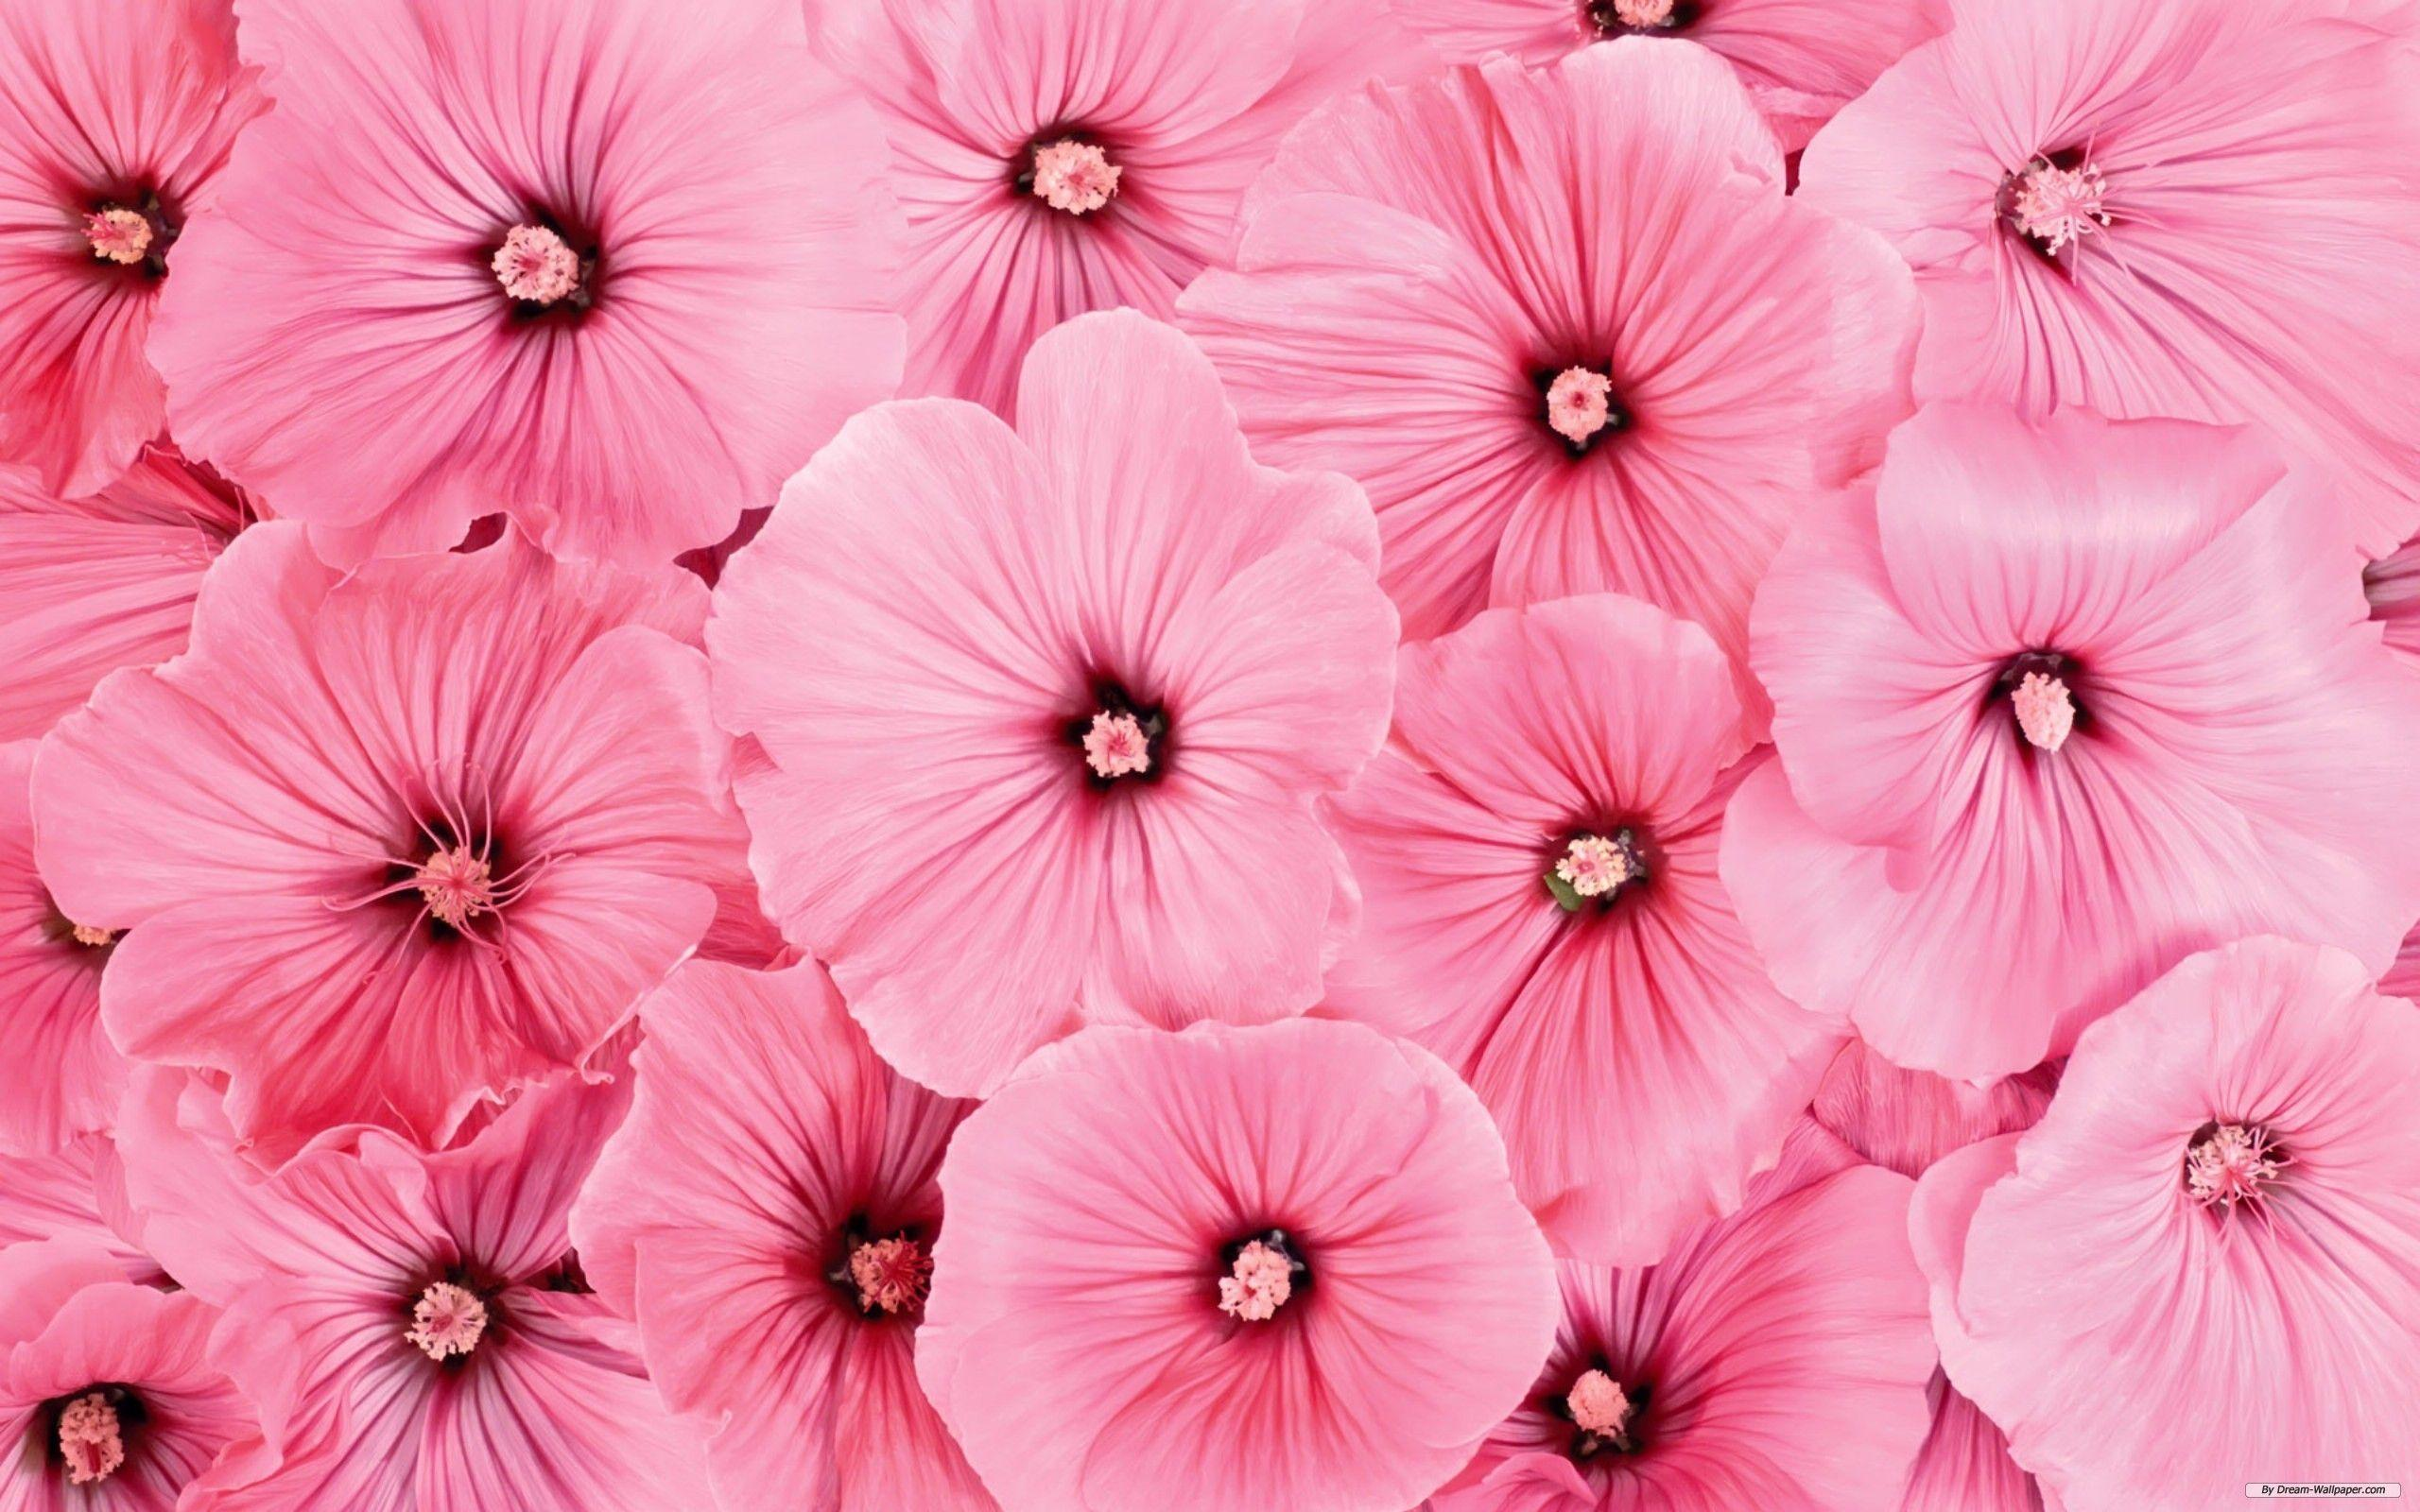 Pink flower wallpapers wallpaper cave pink flower wallpapers full hd wallpaper search mightylinksfo